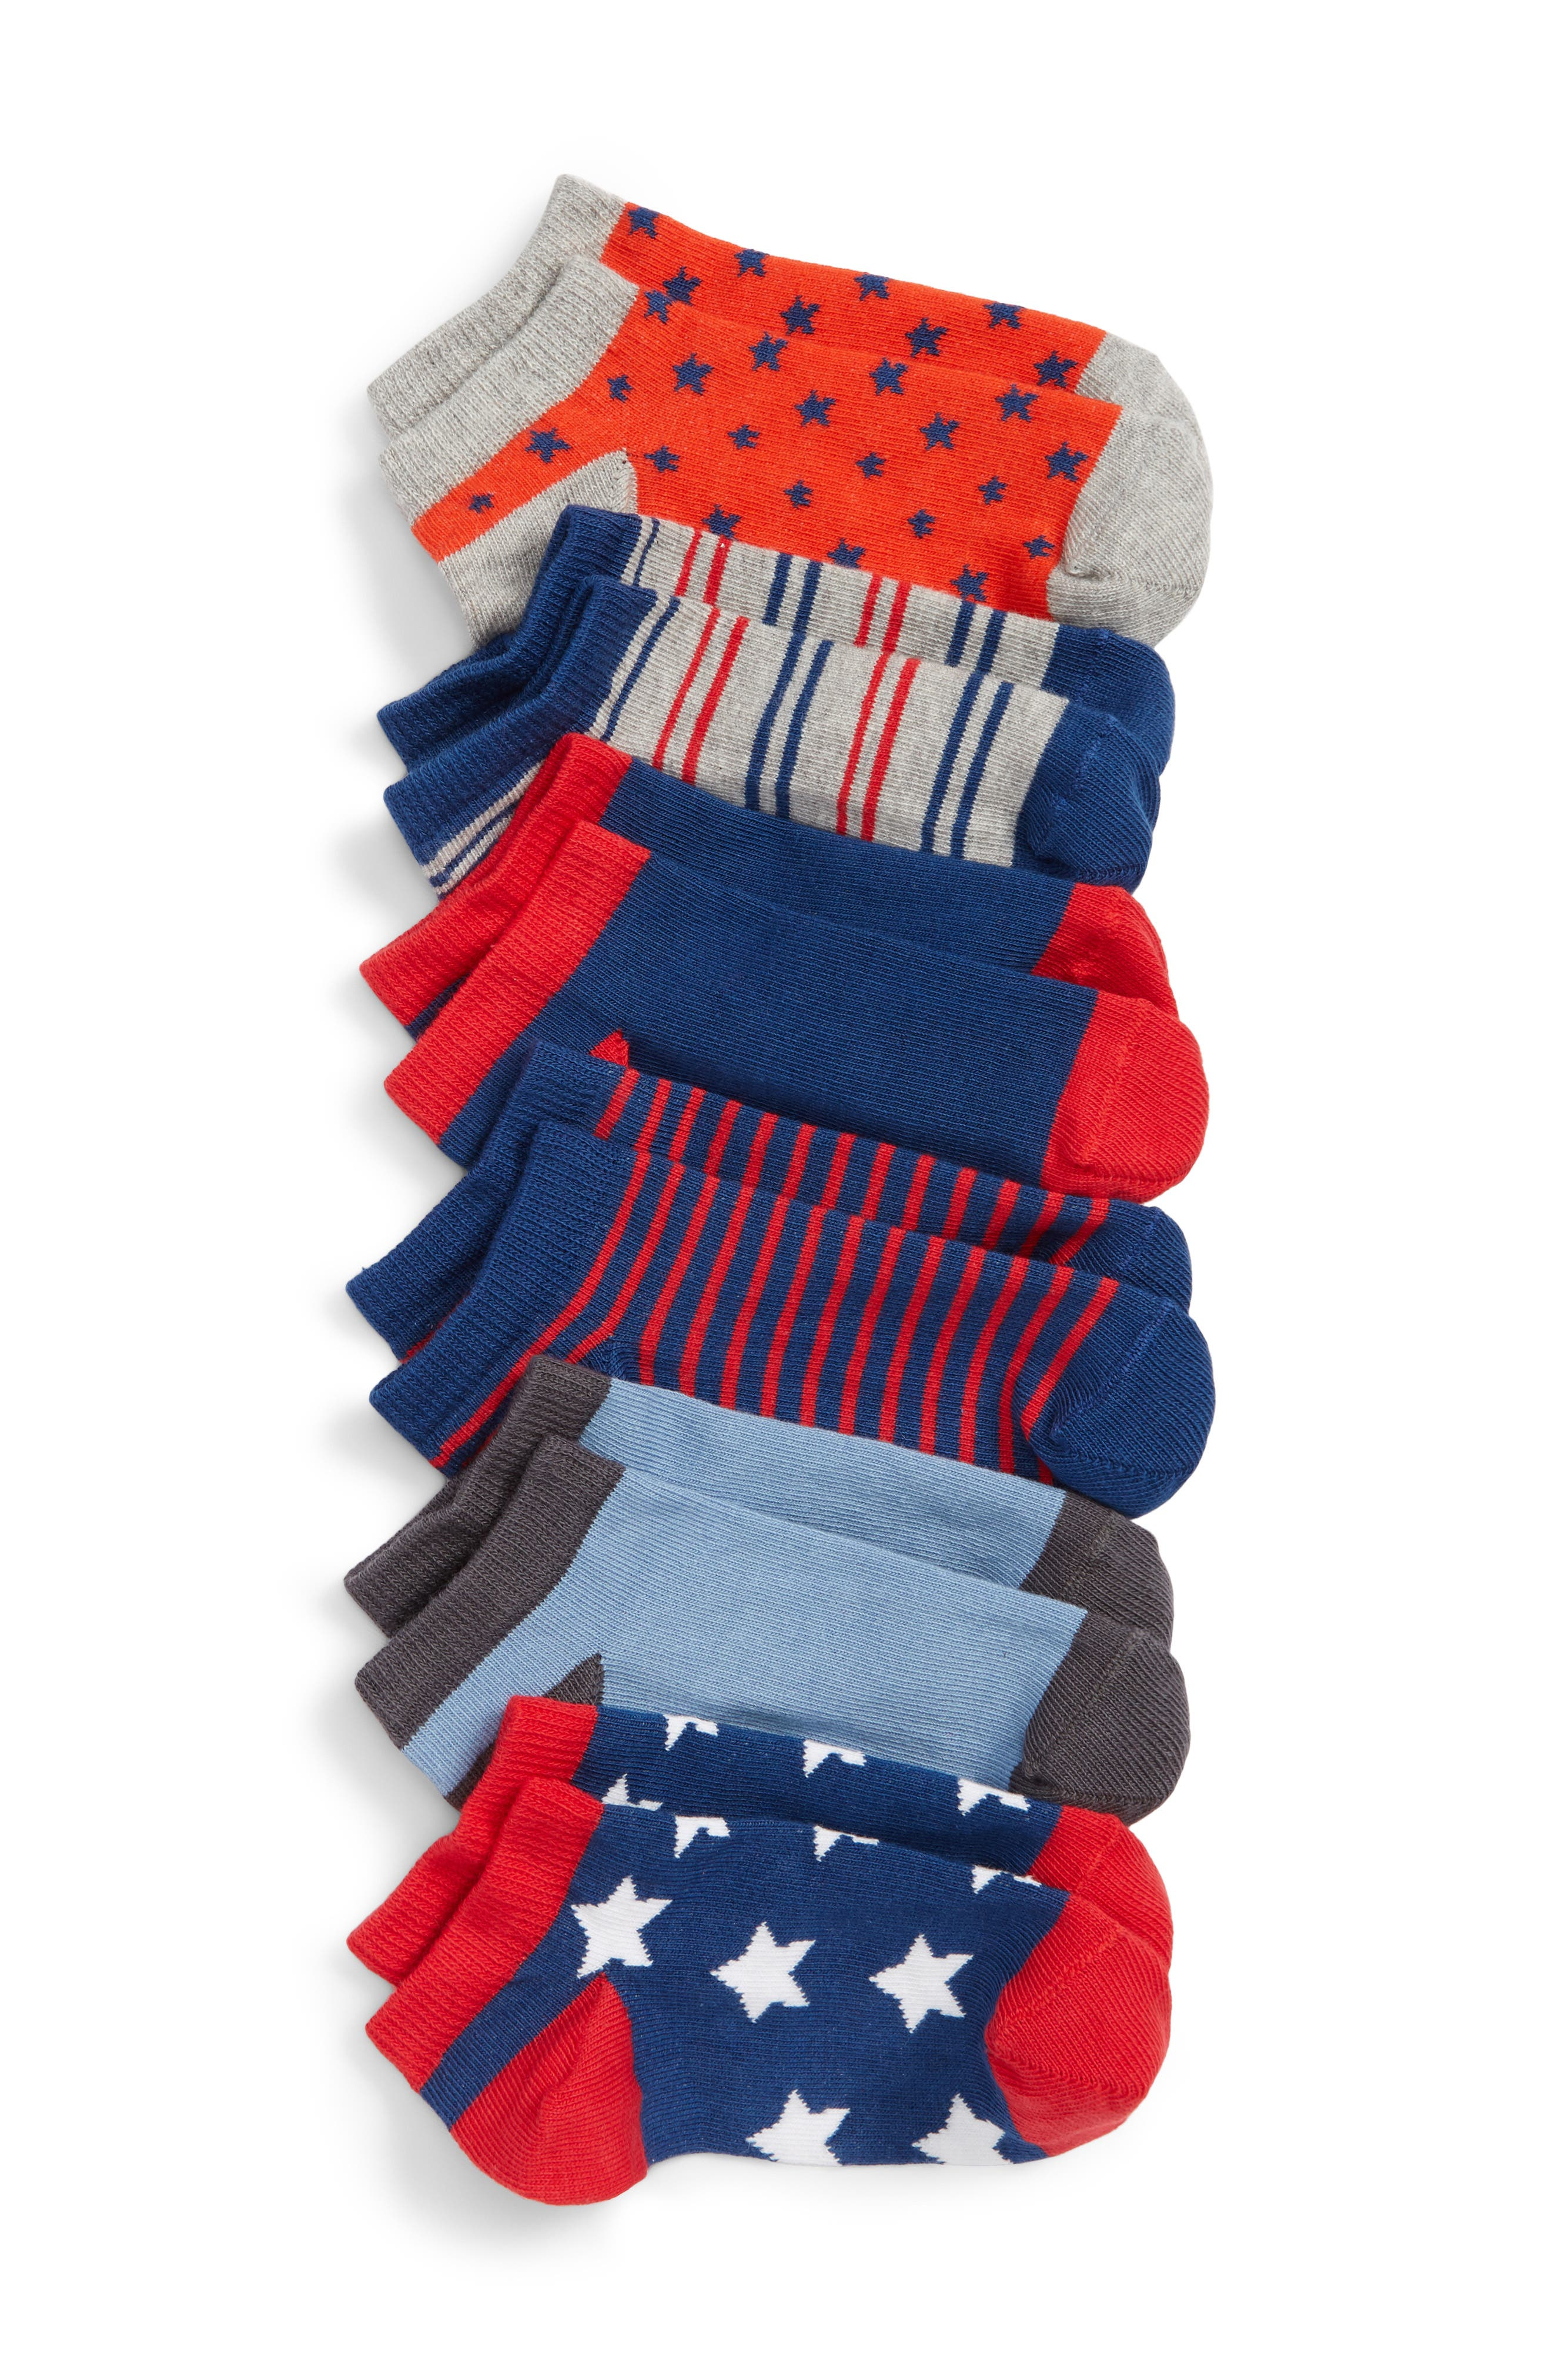 6-Pack Stars and Stripes Low Cut Socks,                             Main thumbnail 1, color,                             NAVY DENIM MULTI